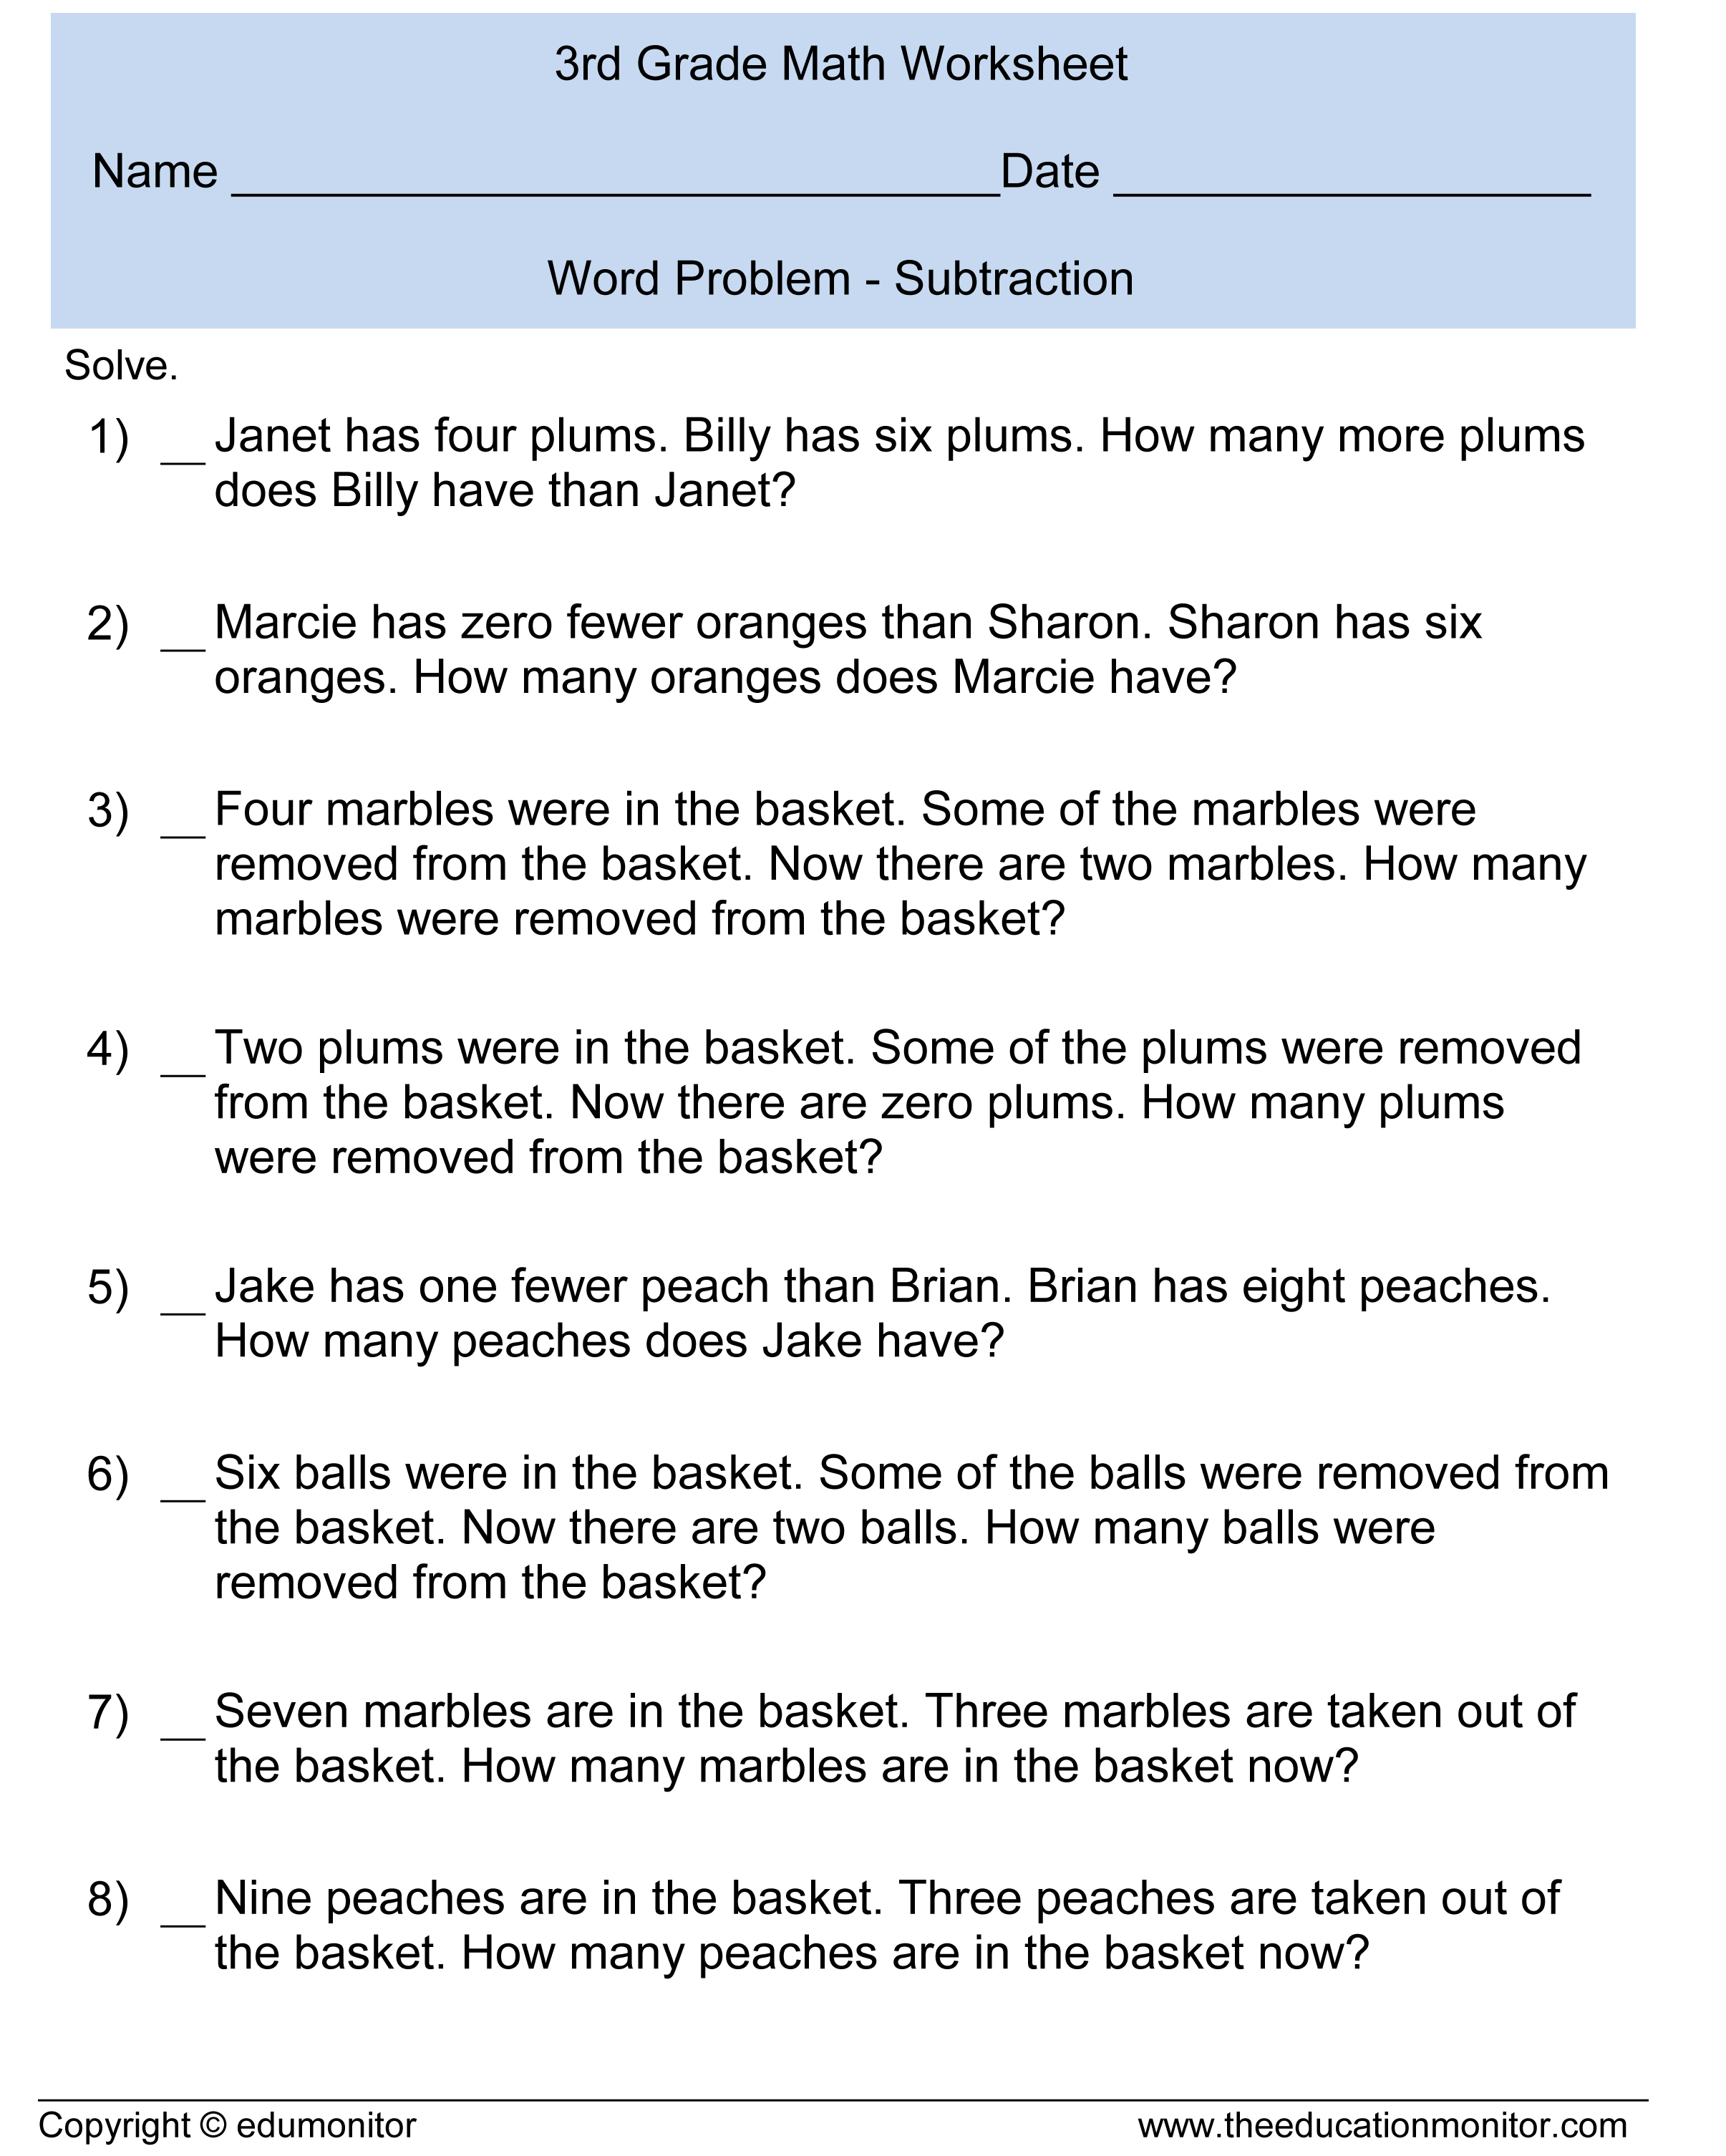 Subtraction Word Problems 3rd Grade For Your Kids